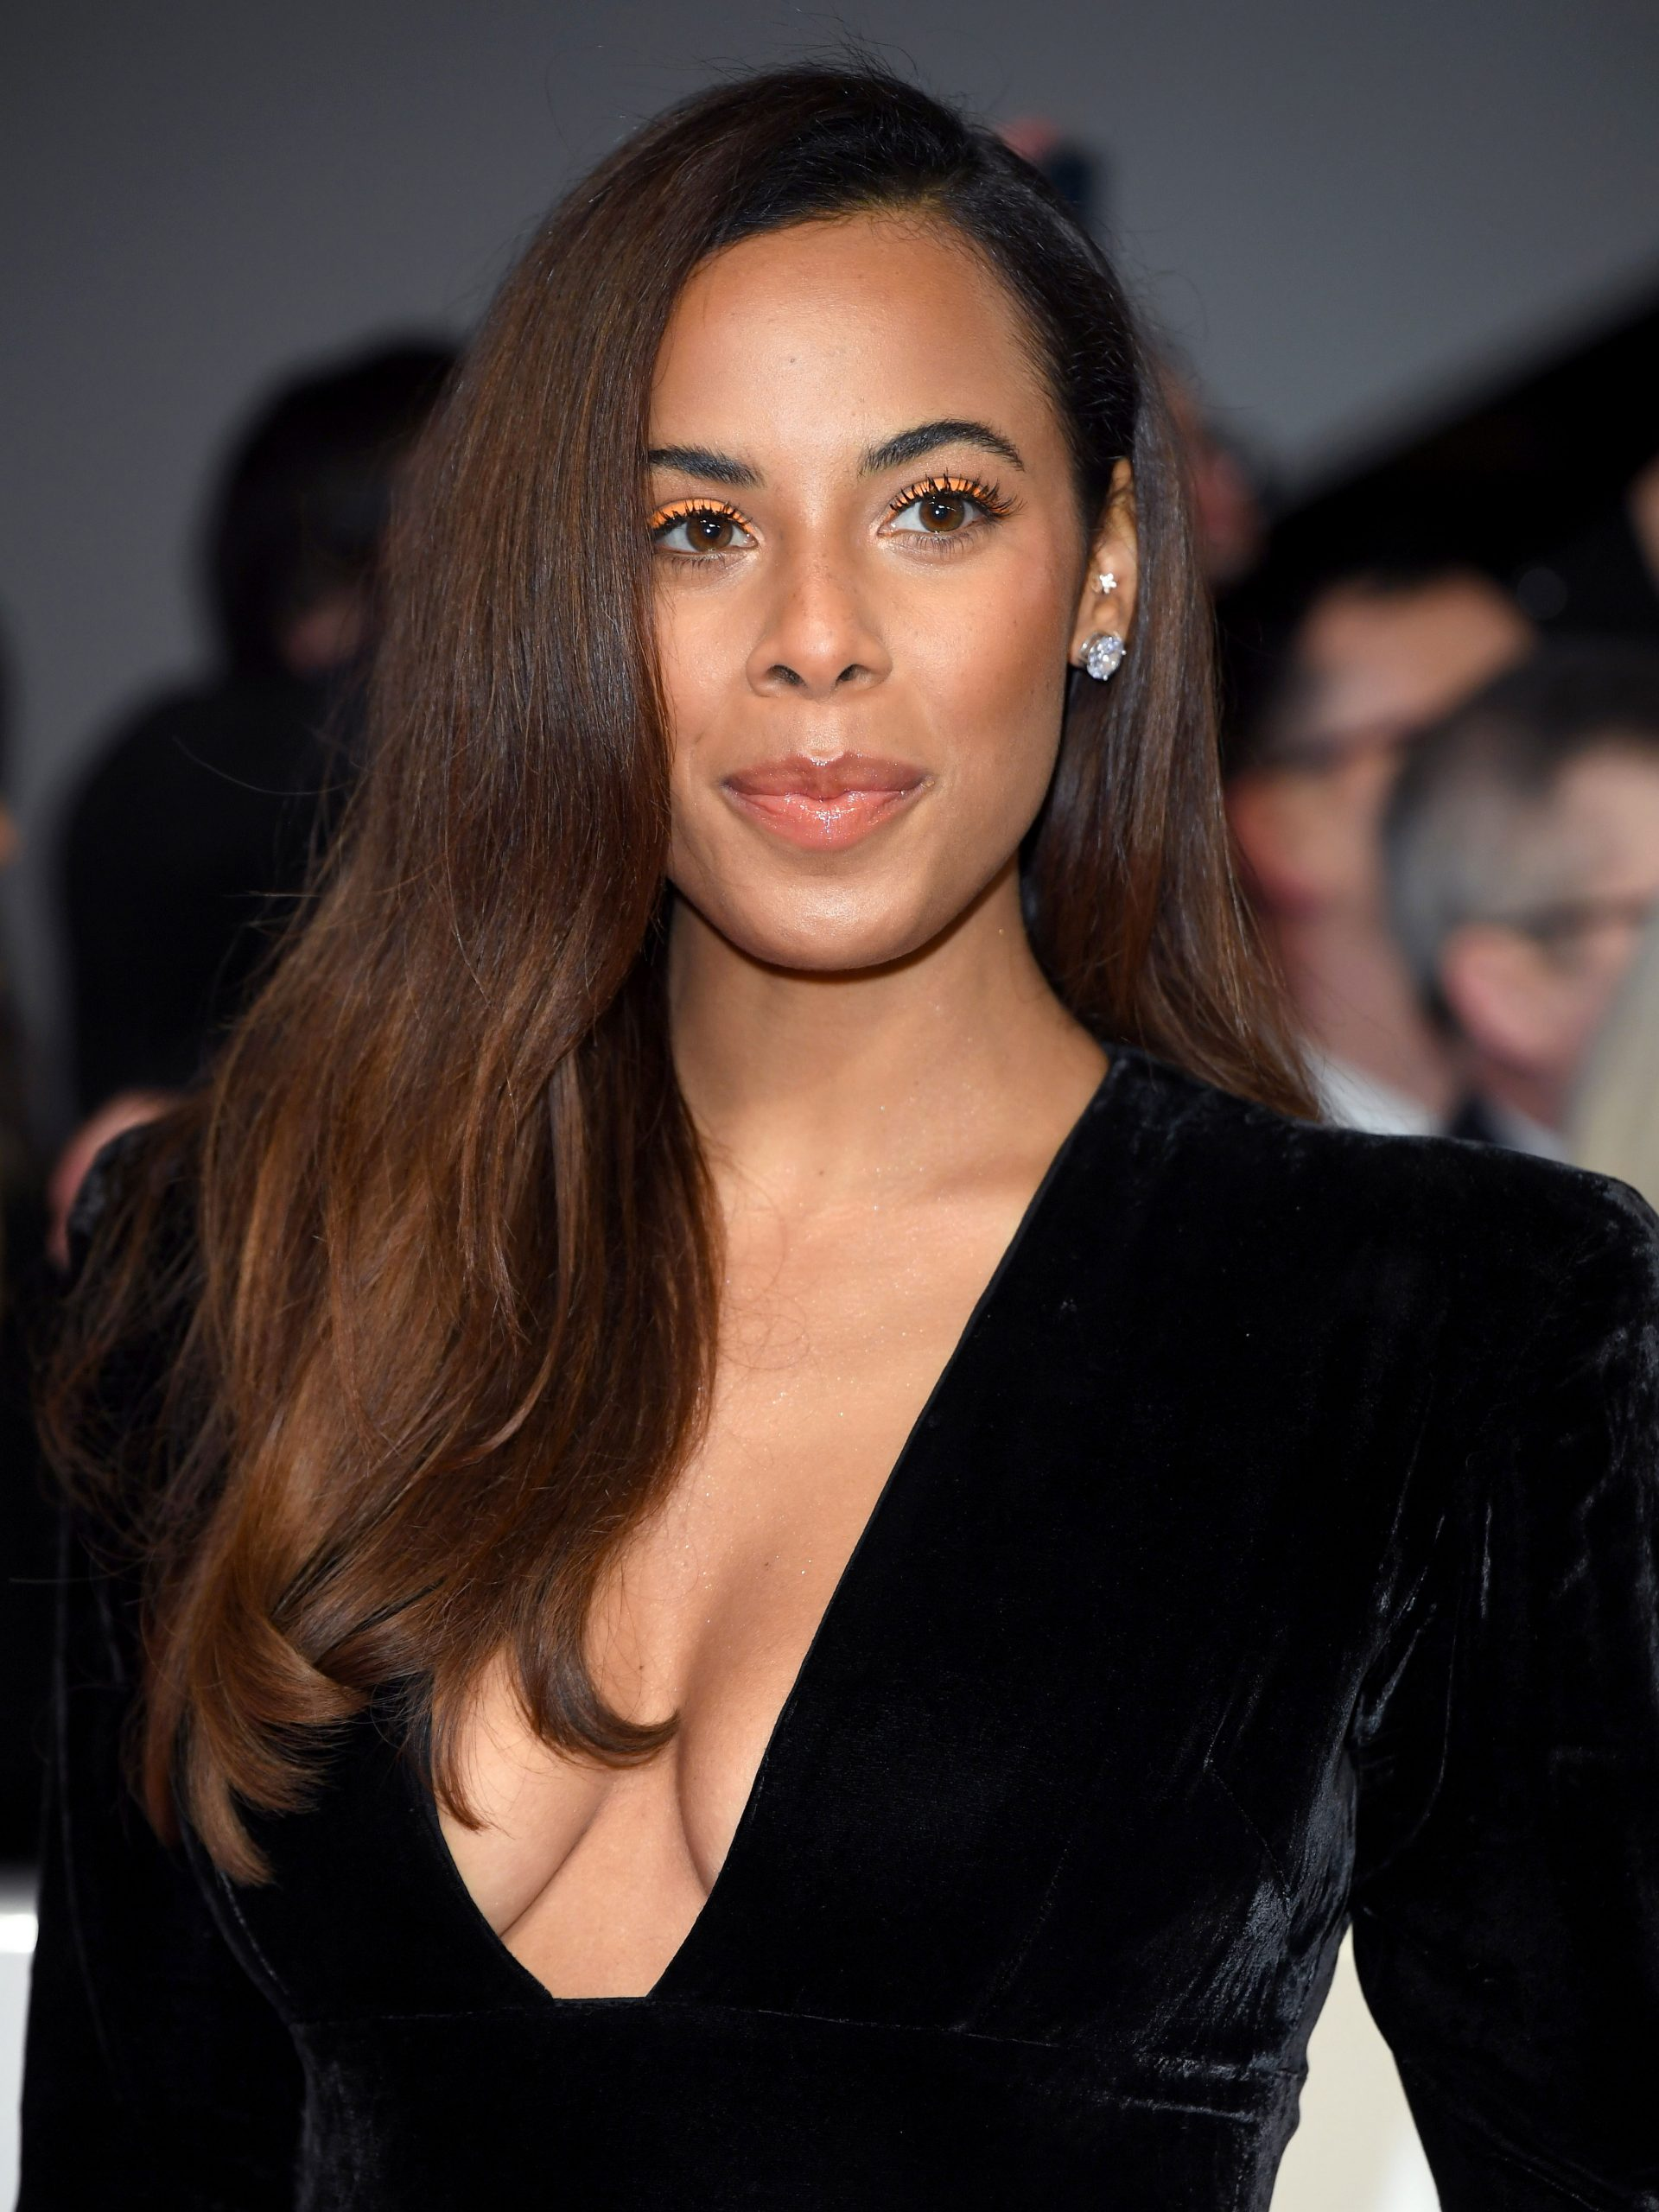 Rochelle Humes shares sneak peek into her life as a mum with adorable snaps of her daughters